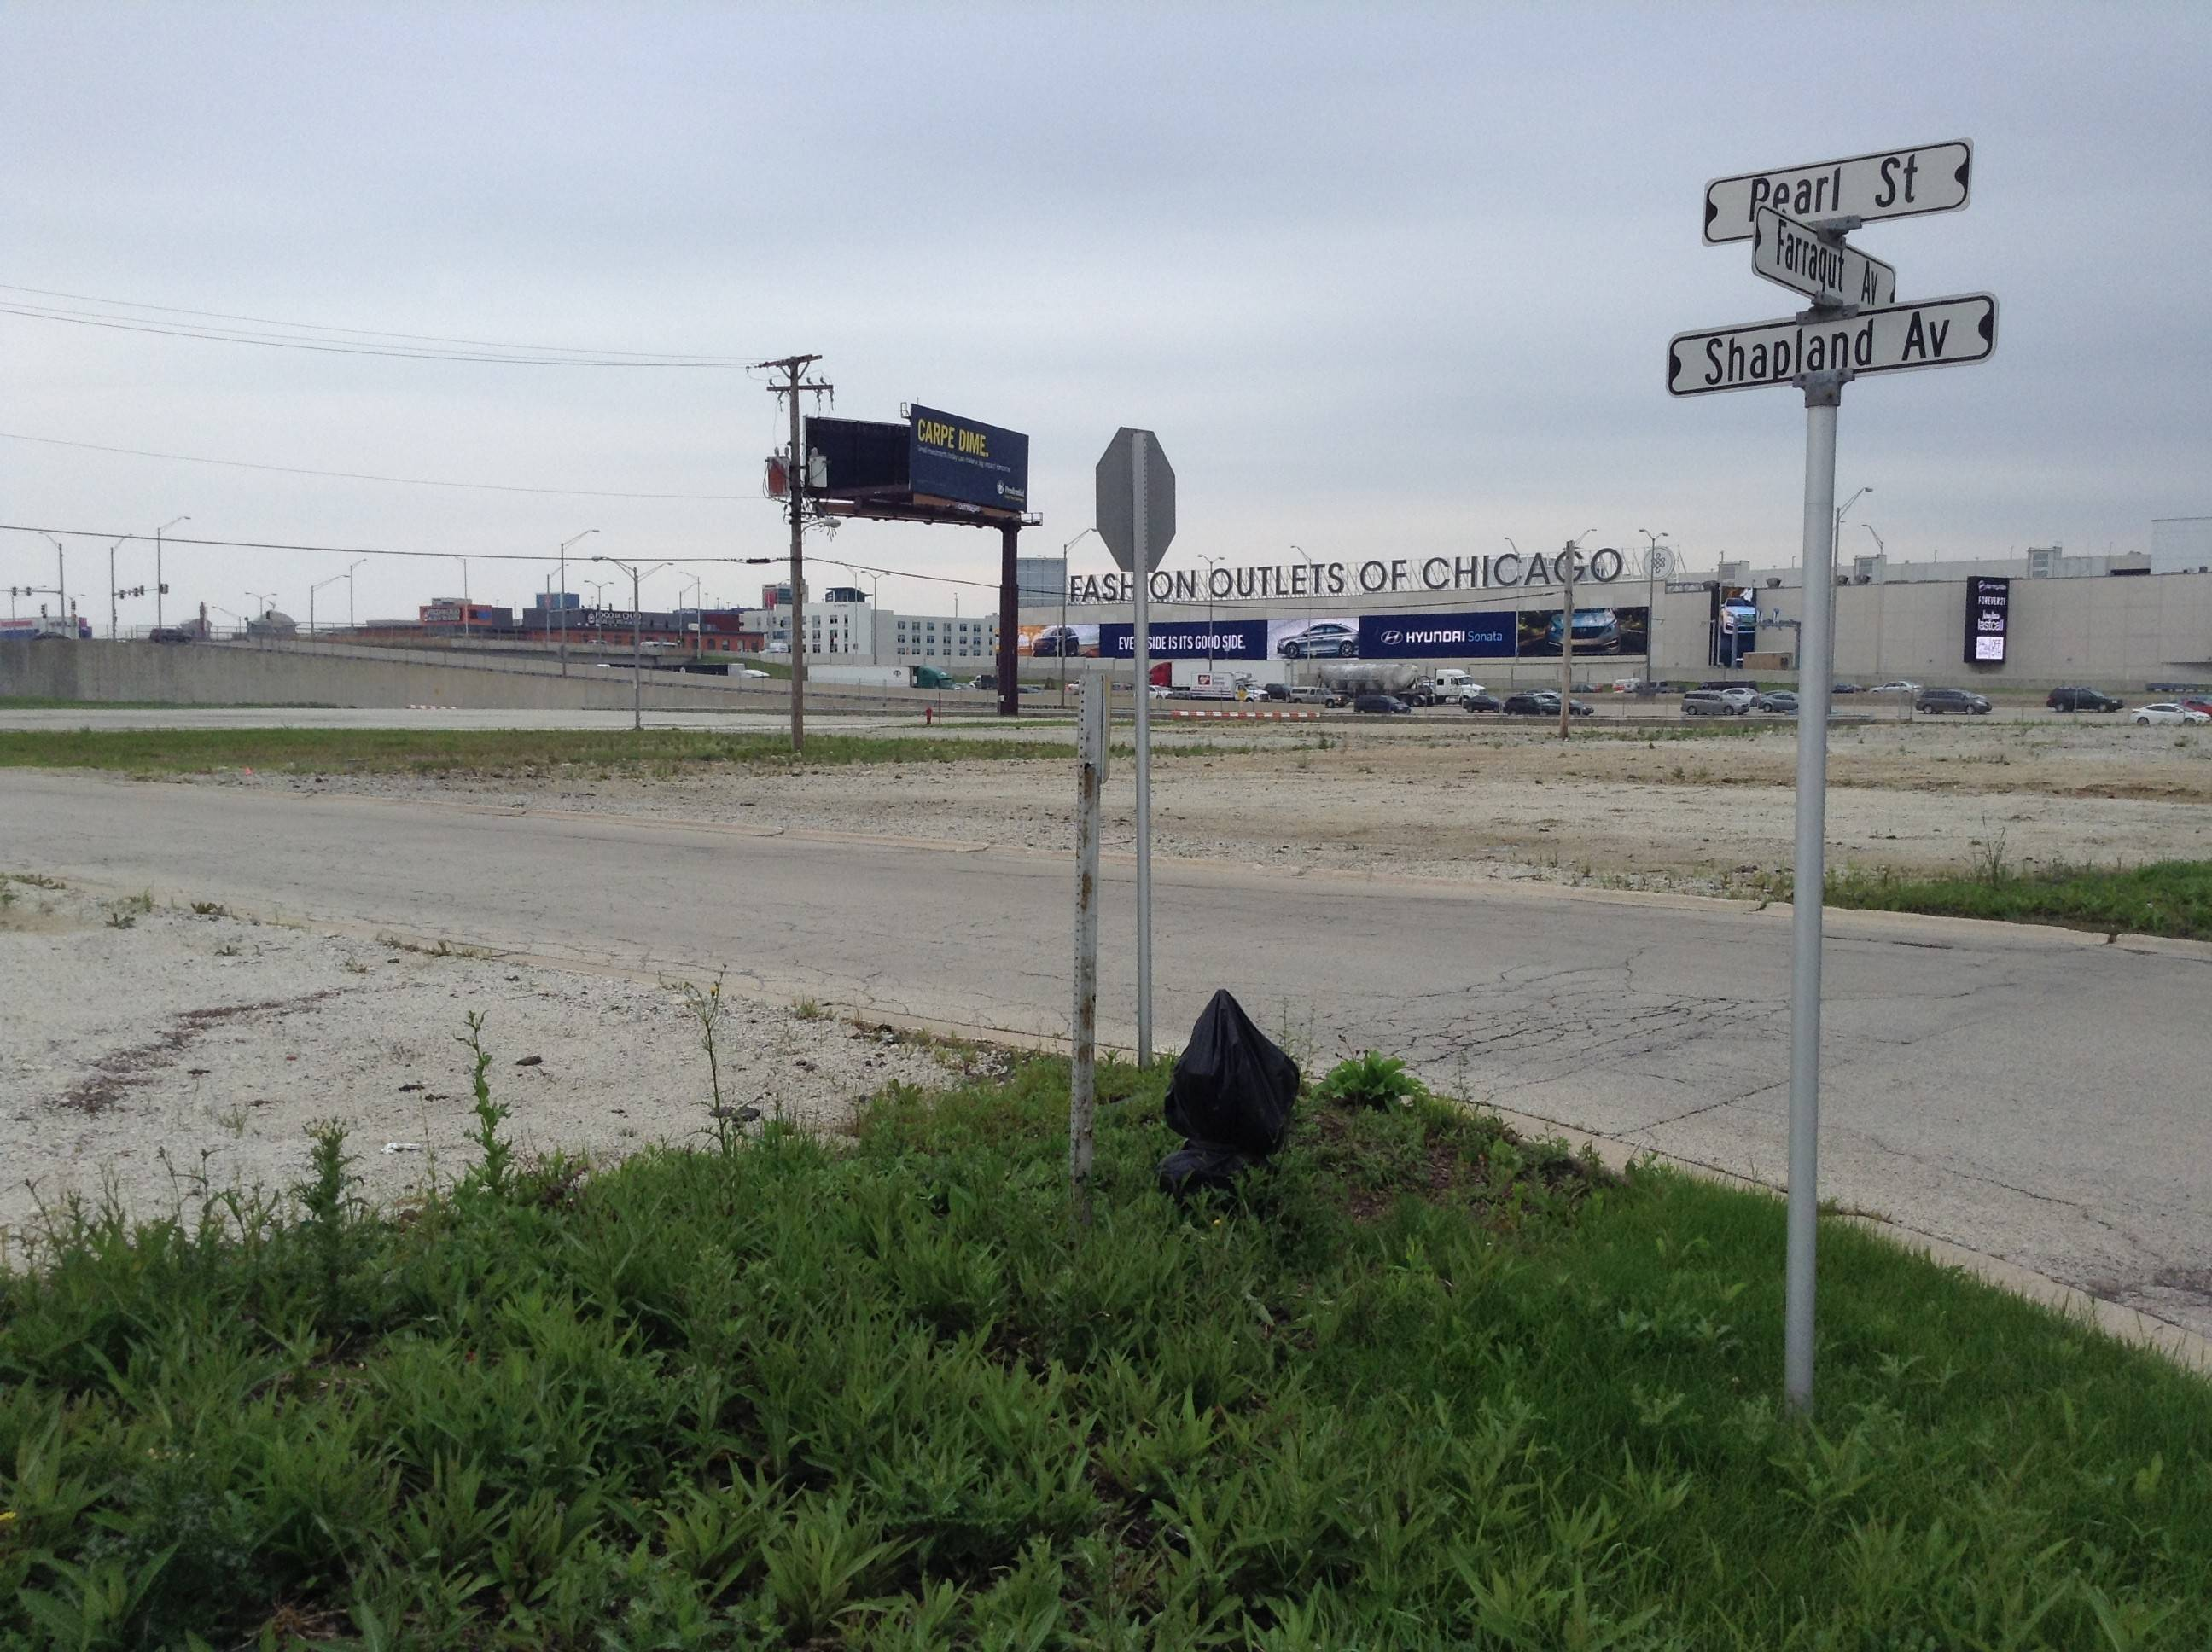 Rosemont plans hotel, restaurants on vacant land near Fashion Outlets